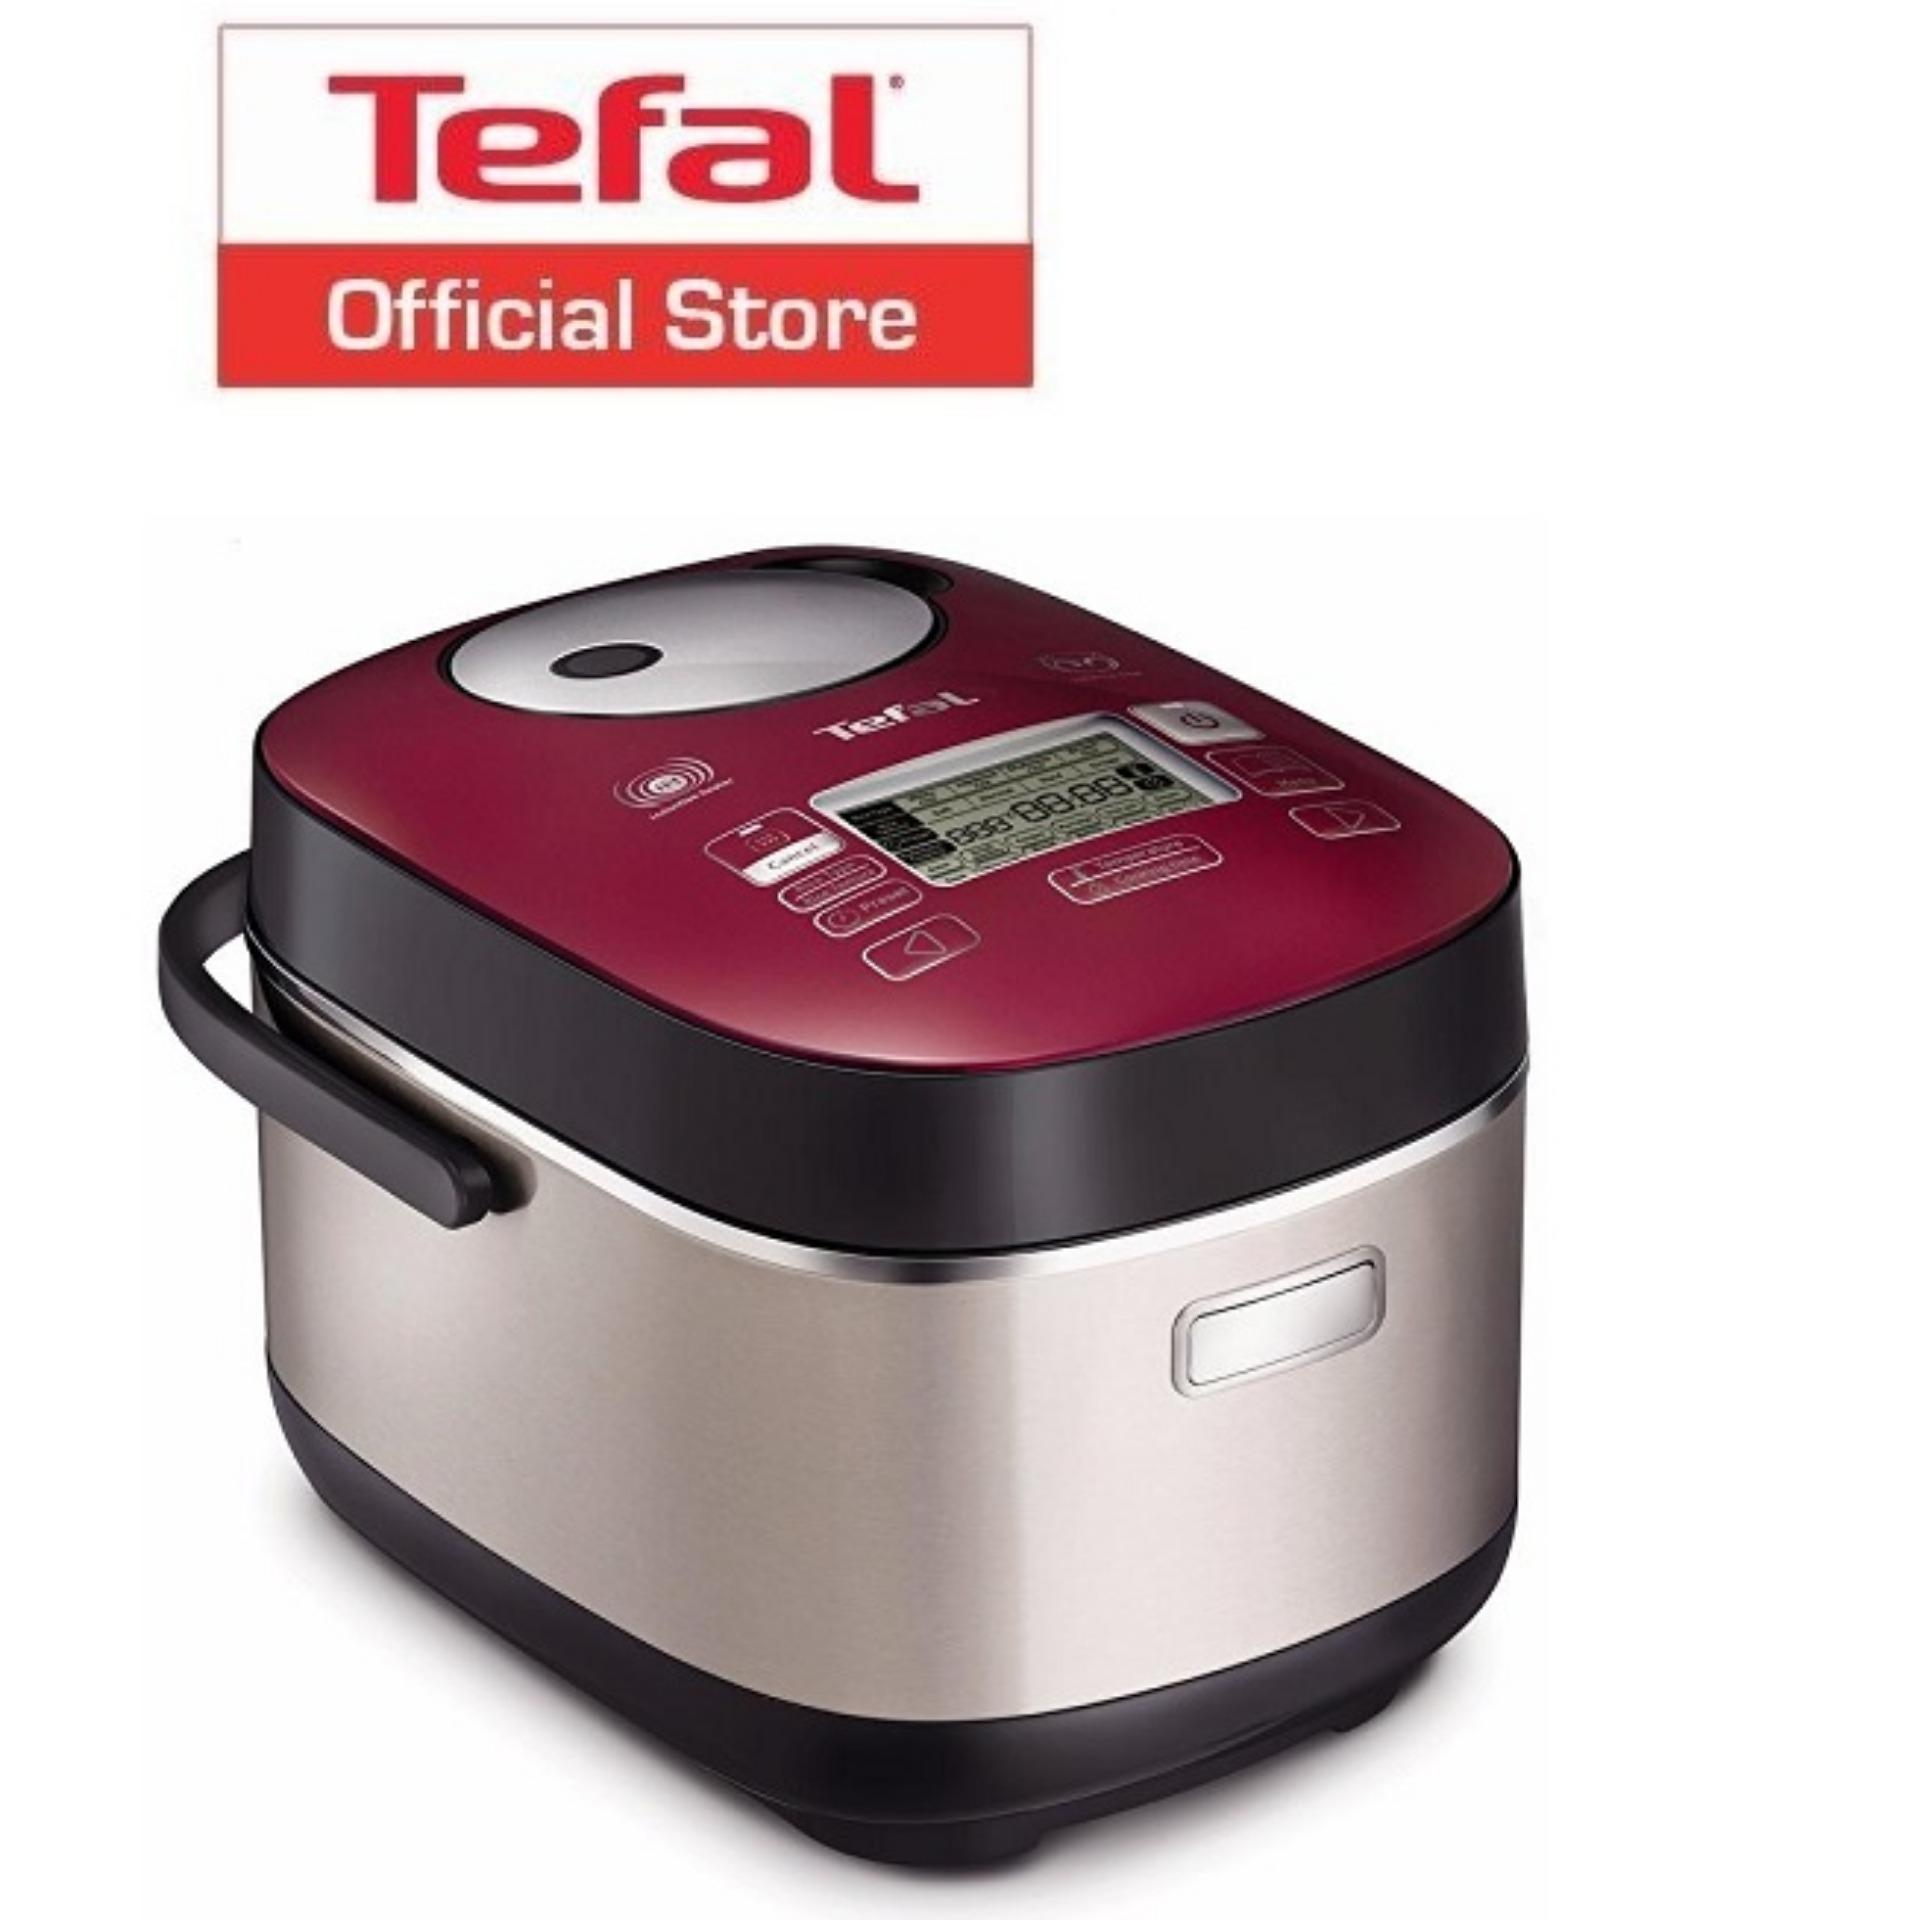 Tefal Pro 48 Program Fuzzy Logic 3 D Induction Spherical Pot Rice Cooker 1 8L Rk8055 Lowest Price